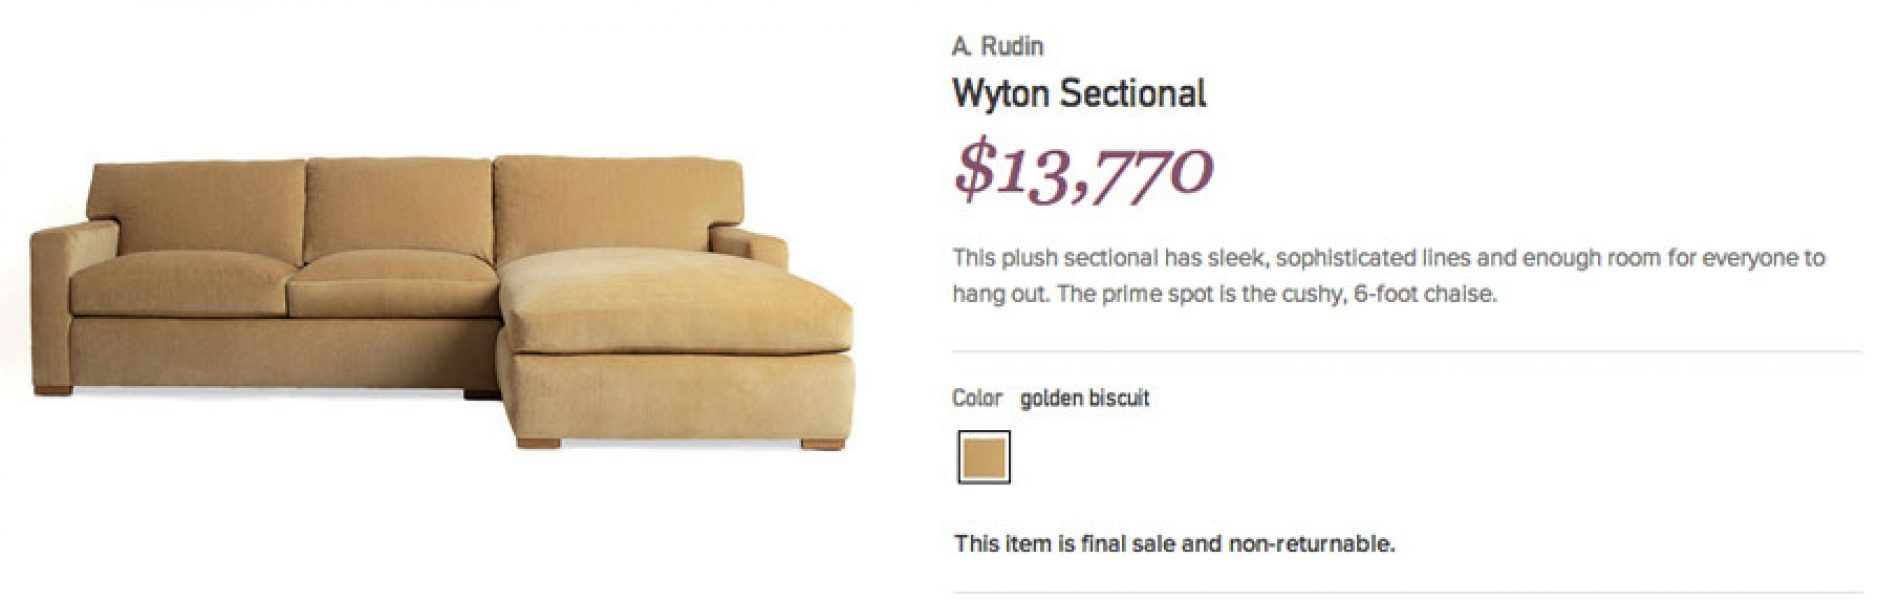 Great deal or Garage sale: Gilt.com Overpriced Couch – Who ...